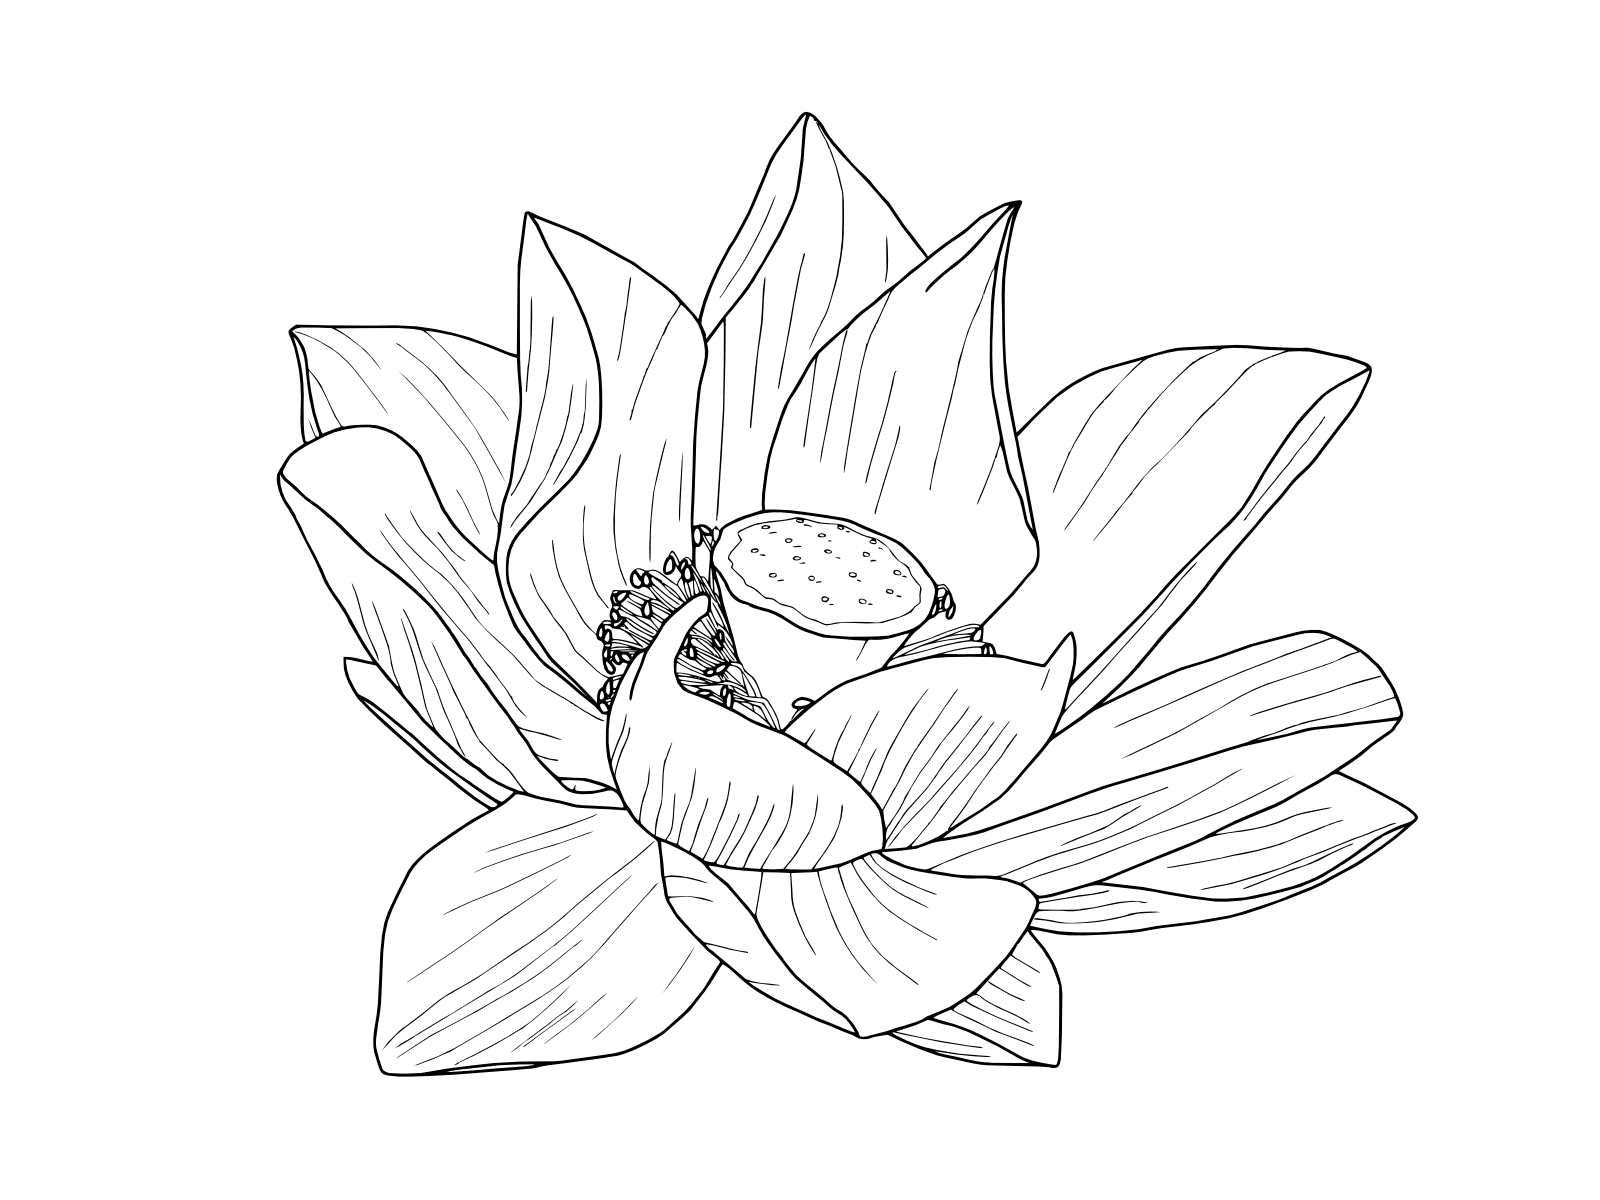 Flower sketch png. Transparent drawing at getdrawings